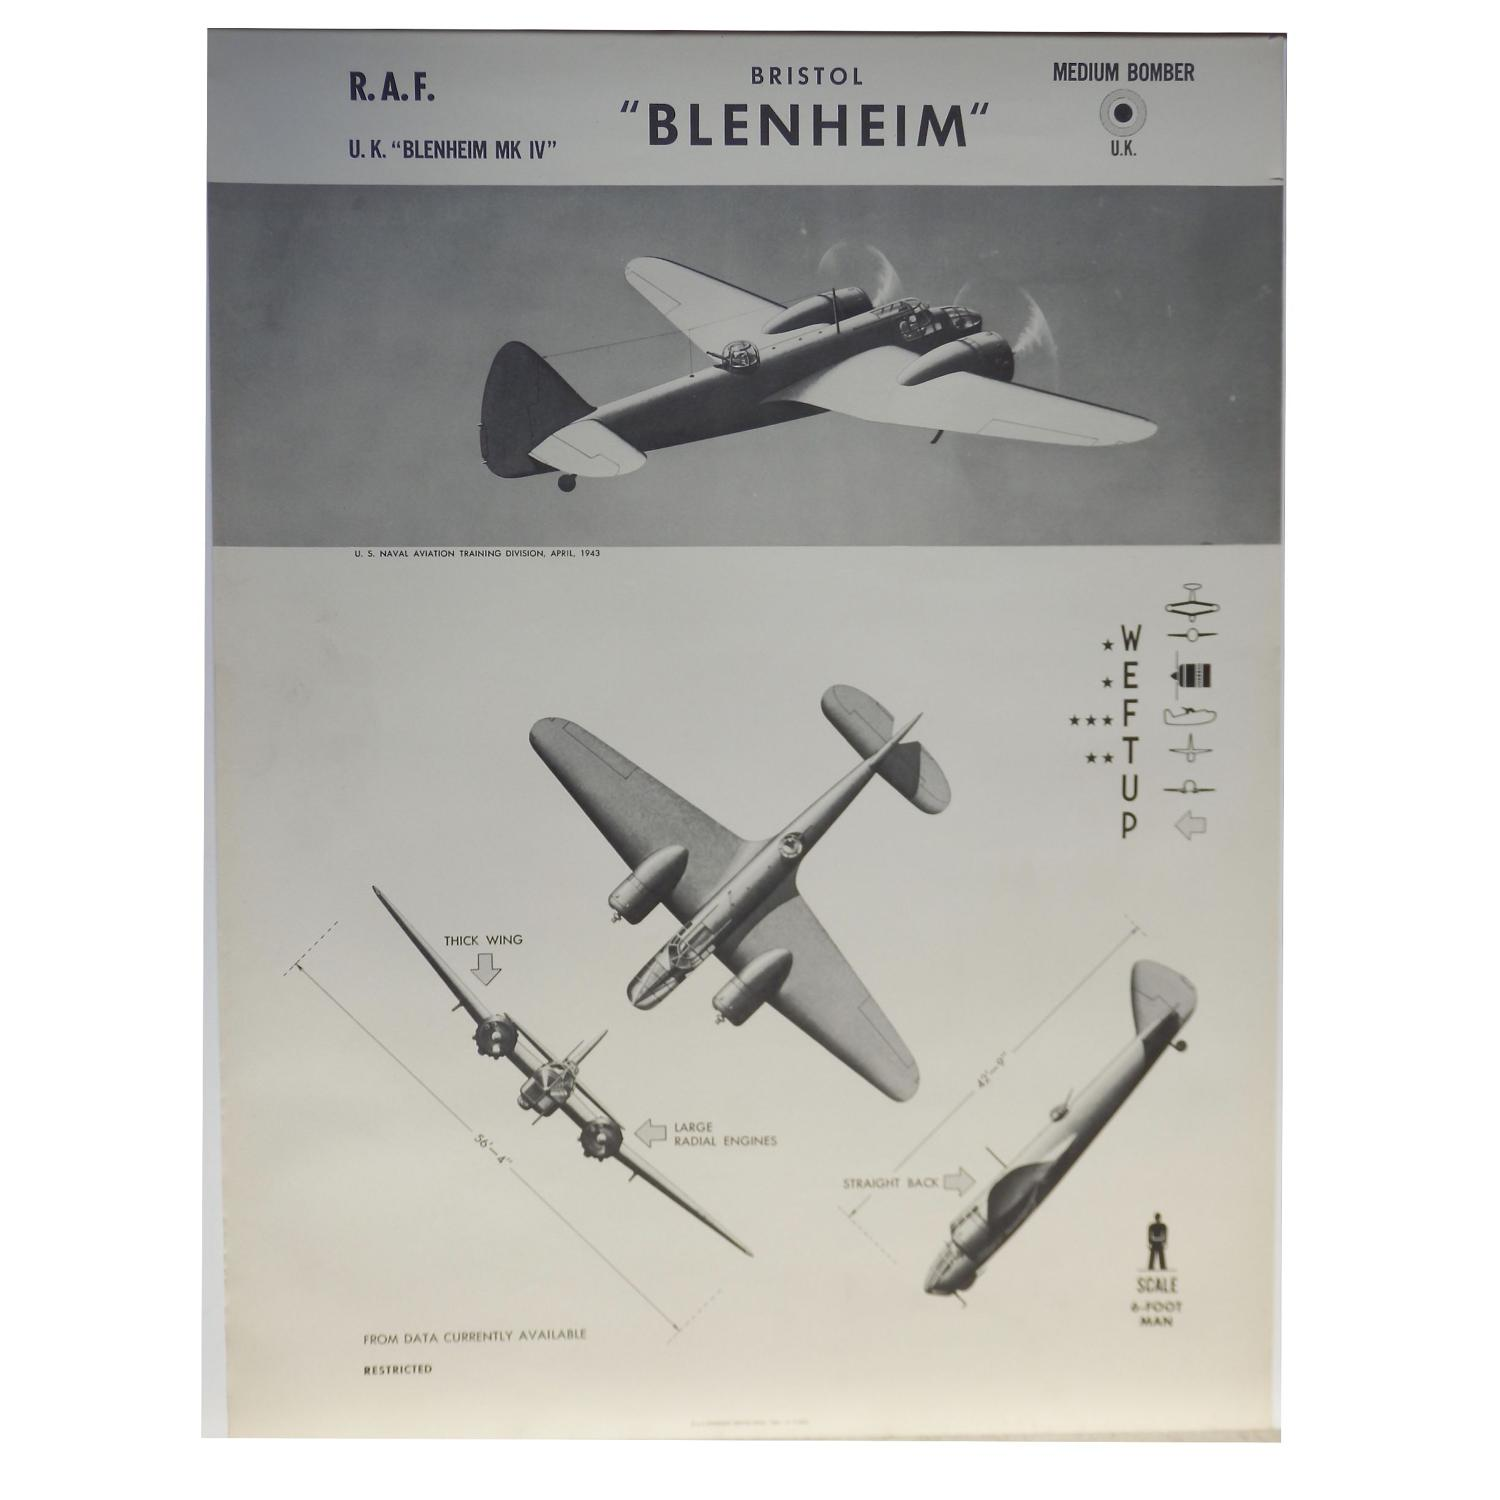 American recognition poster - RAF Blenheim